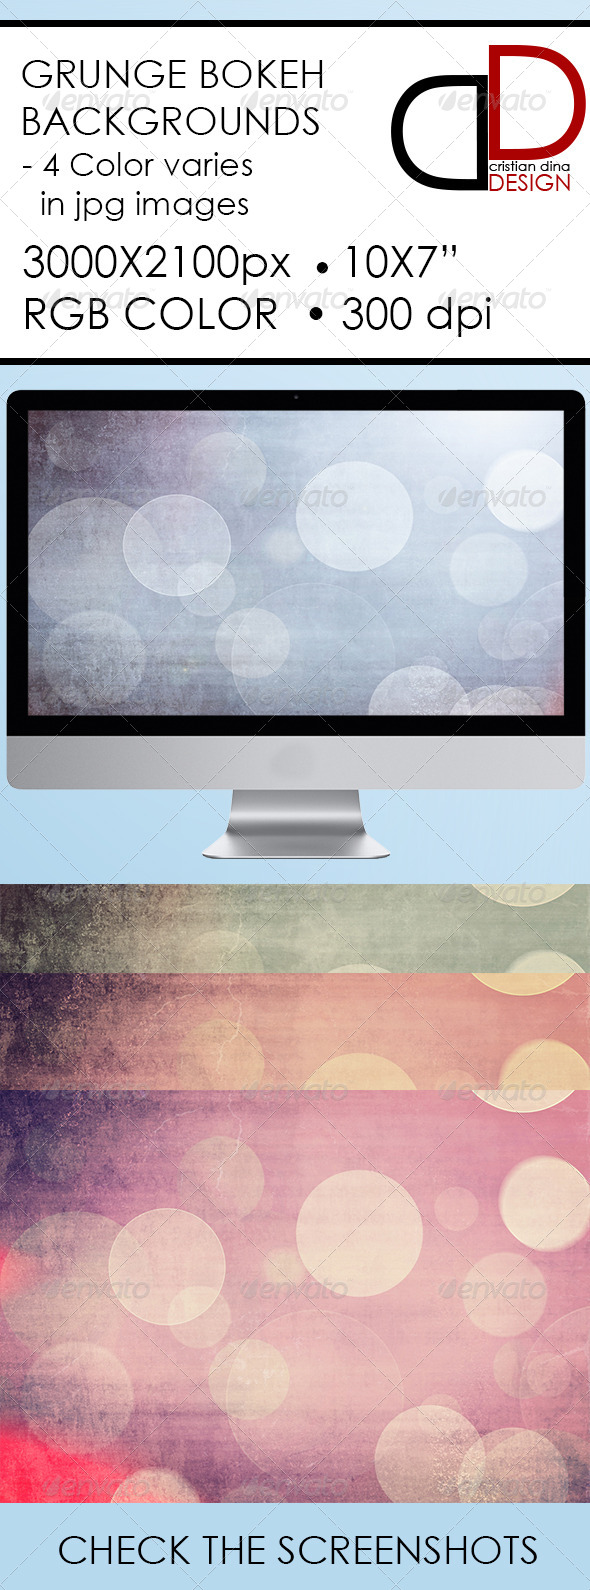 Abstract Grunge Bokeh Backgrounds - Backgrounds Graphics